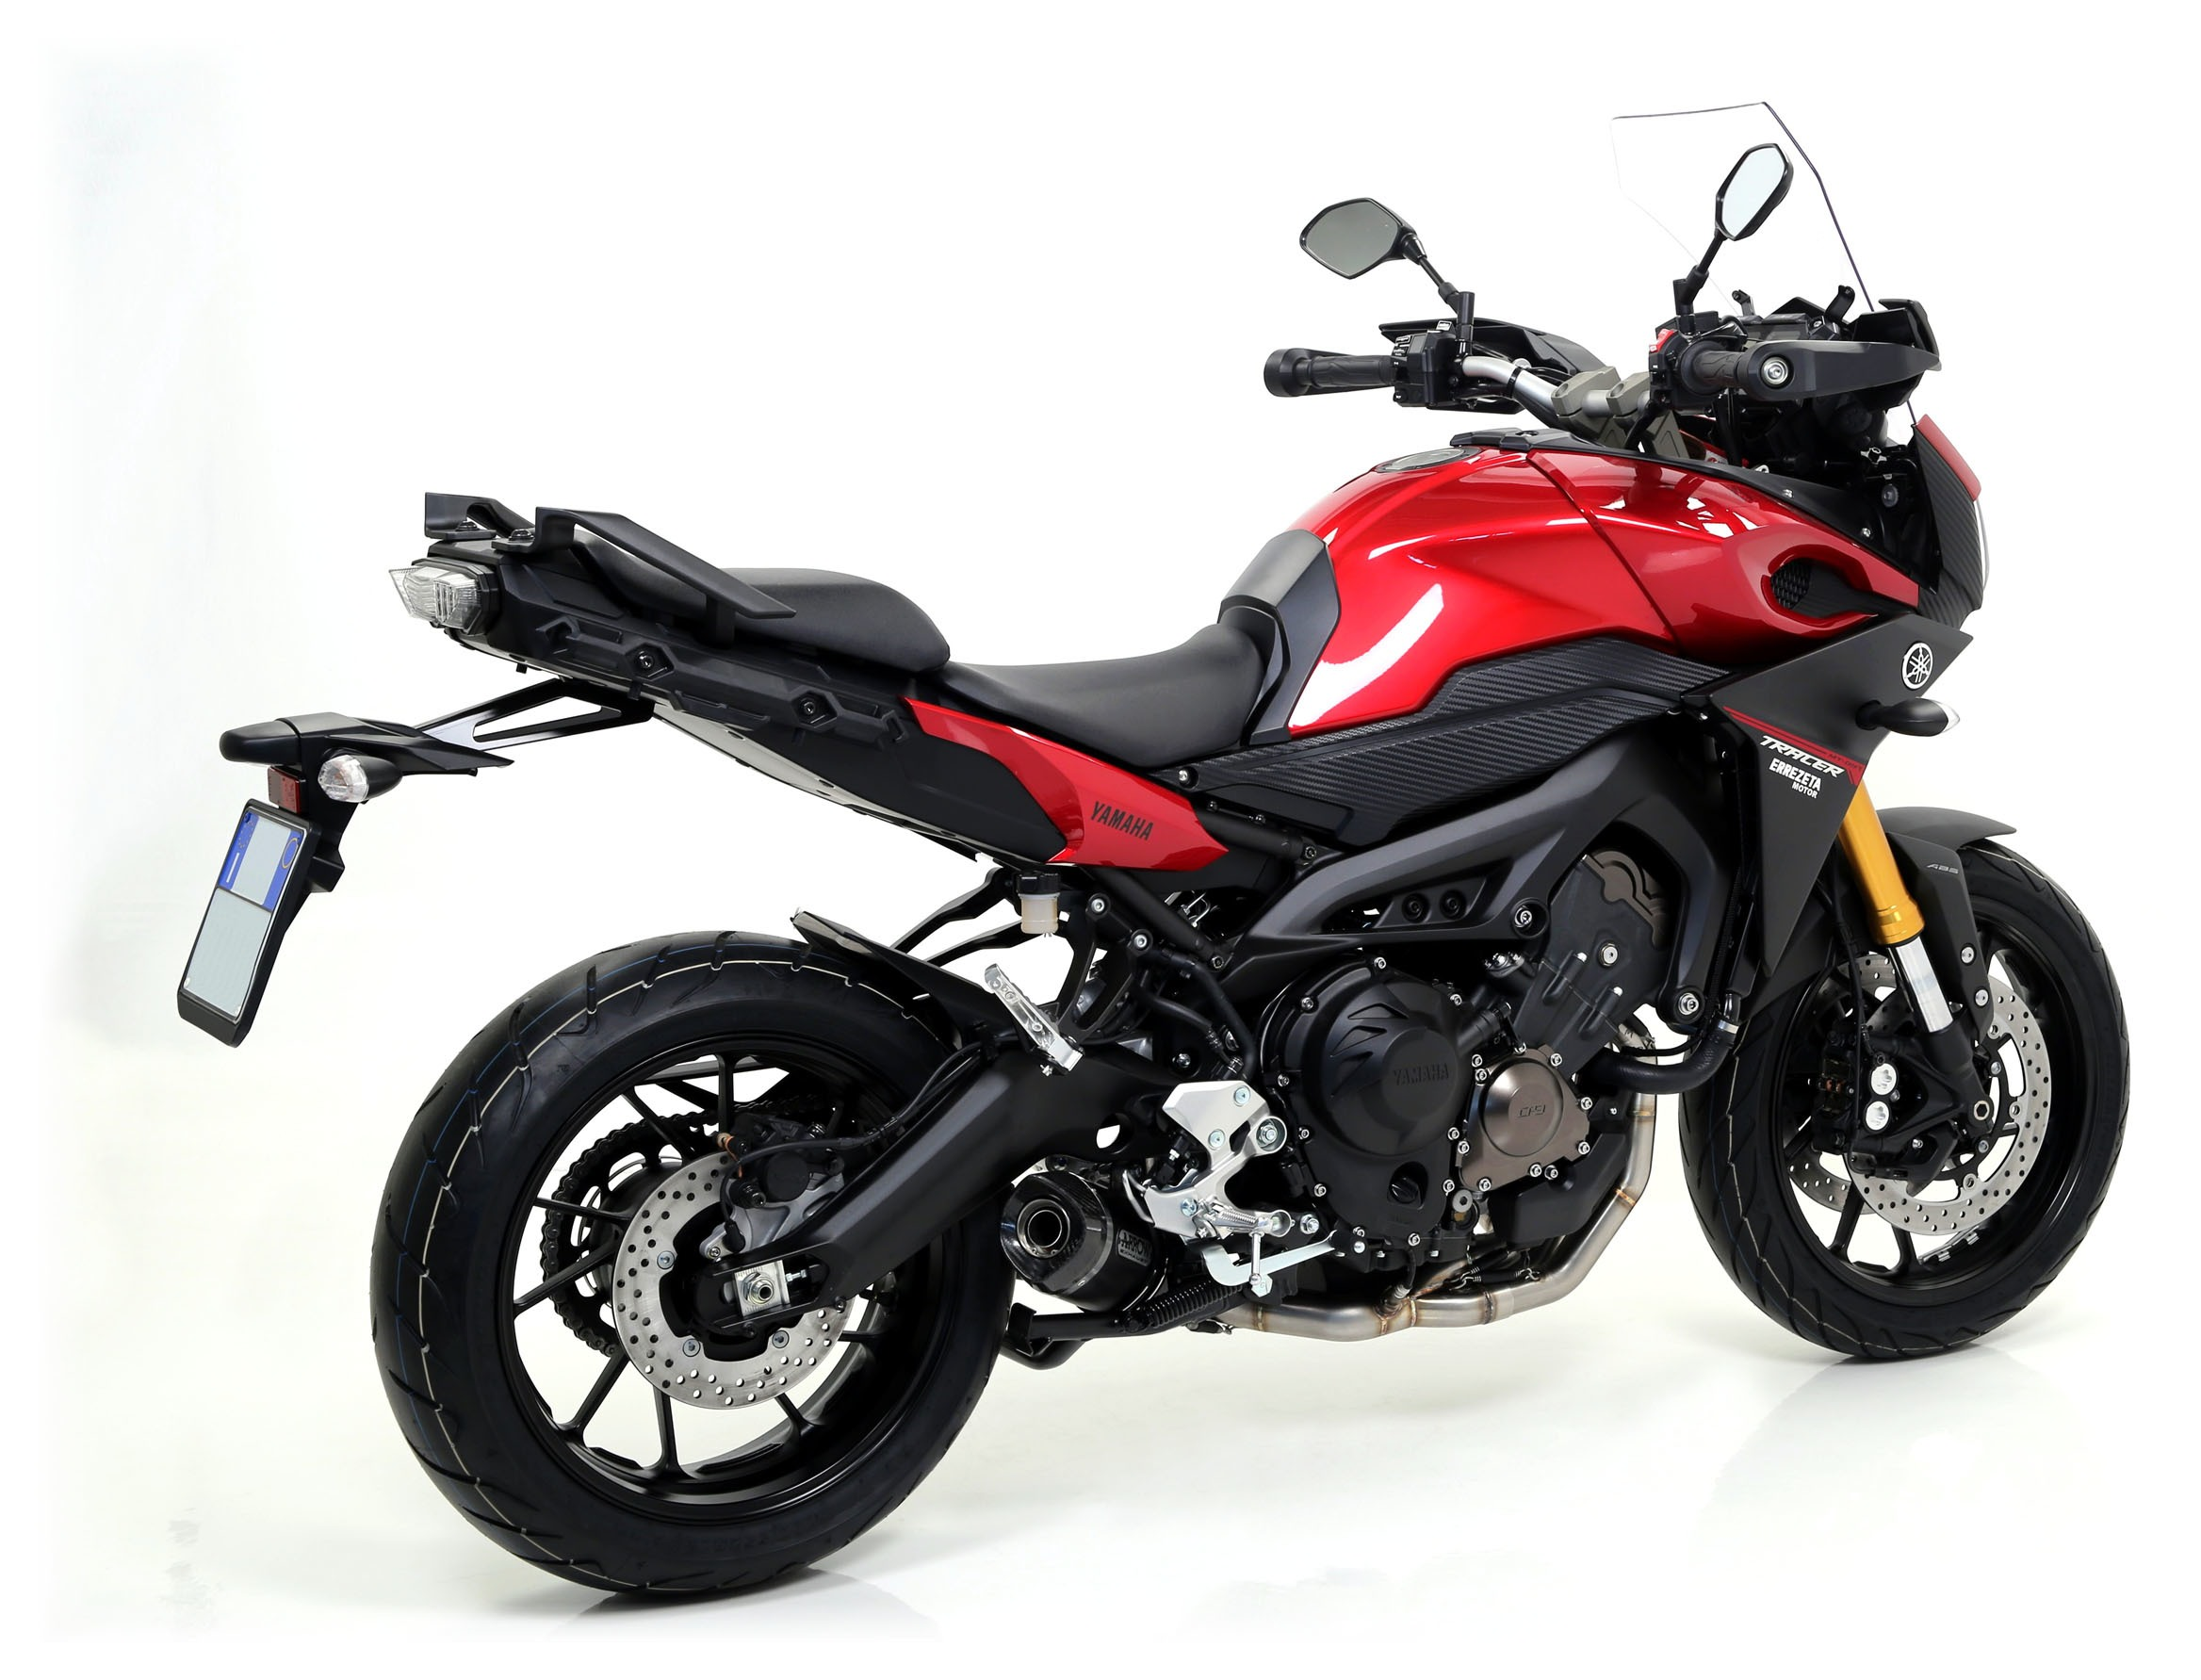 Confirmed By Akrapovic Anium Exhaust For Fz09 Fits The Xsr900